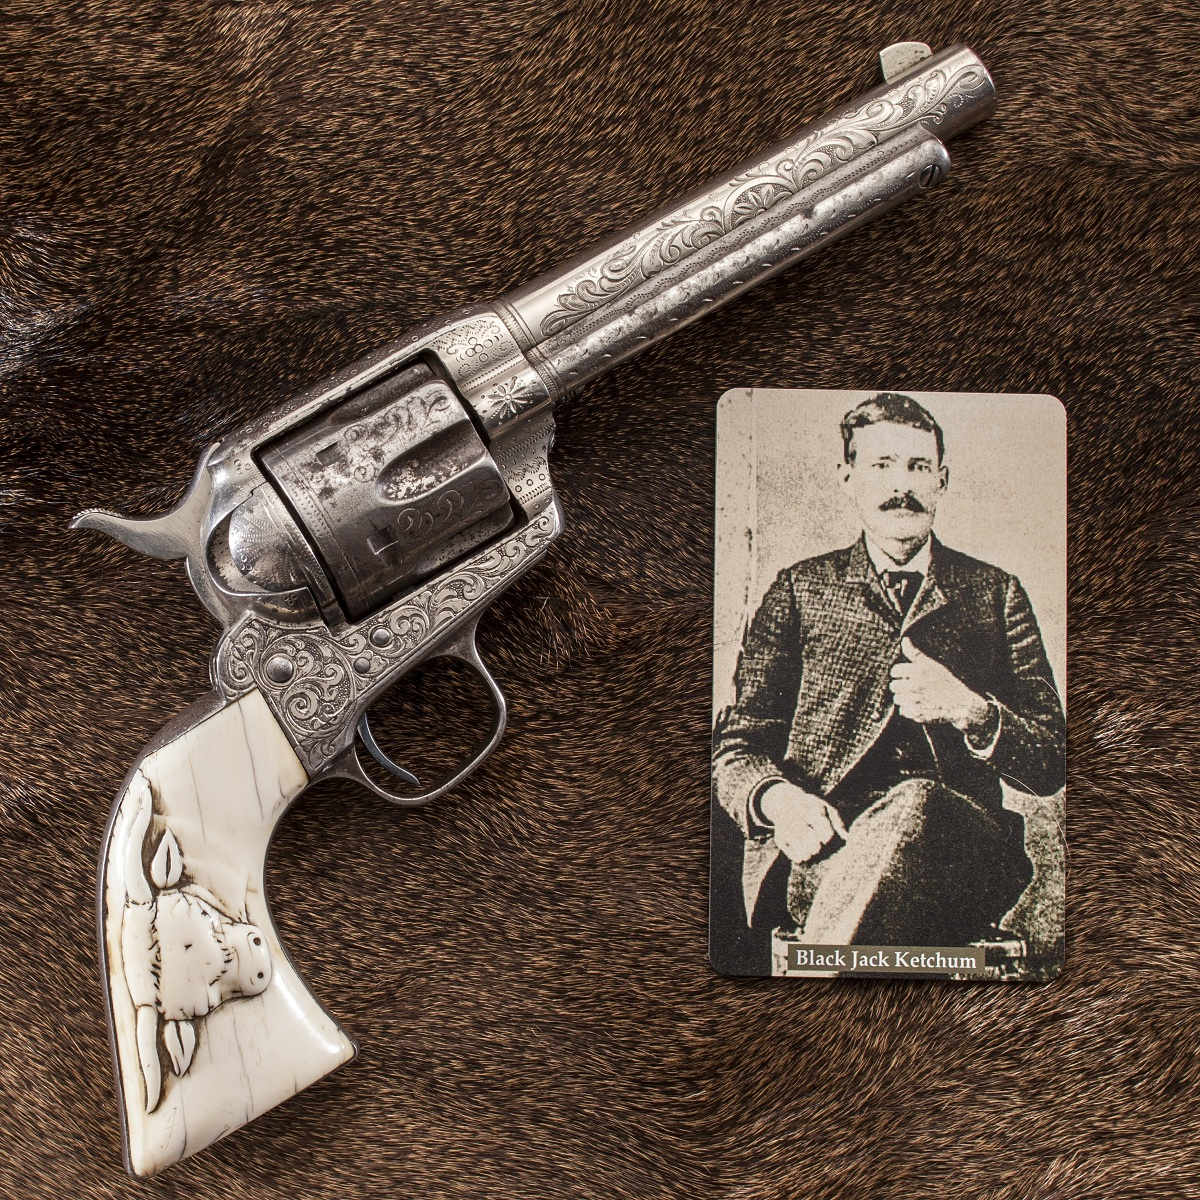 outdoorhub-4-revolvers-famous-outlaws-lawmen-old-west-2015-04-17_20-07-40.jpg